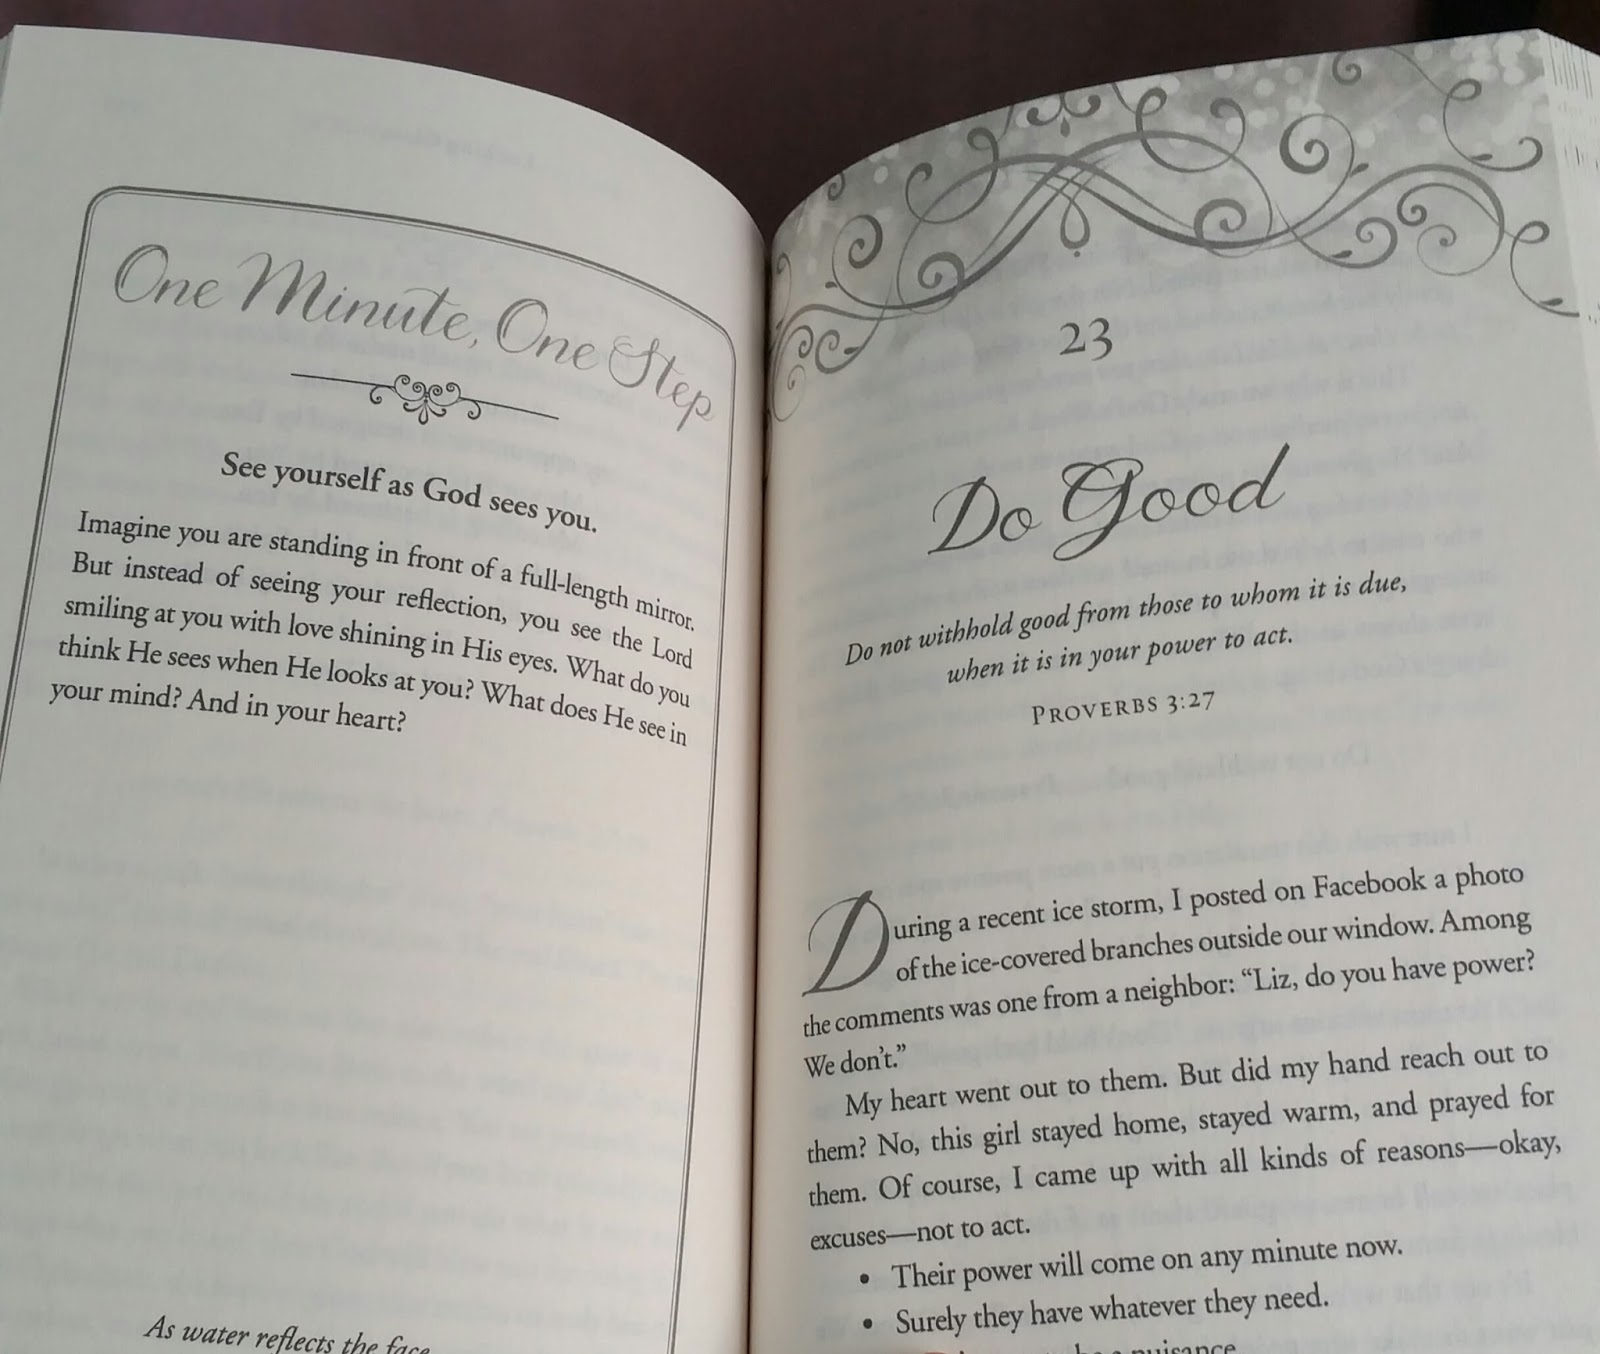 Diy mom 31 proverbs to light your path by liz curtis higgs book review each chapter also includes a prayer and a one minute one step challenge for do it now tasks which readers can accomplish in a minute or less solutioingenieria Gallery